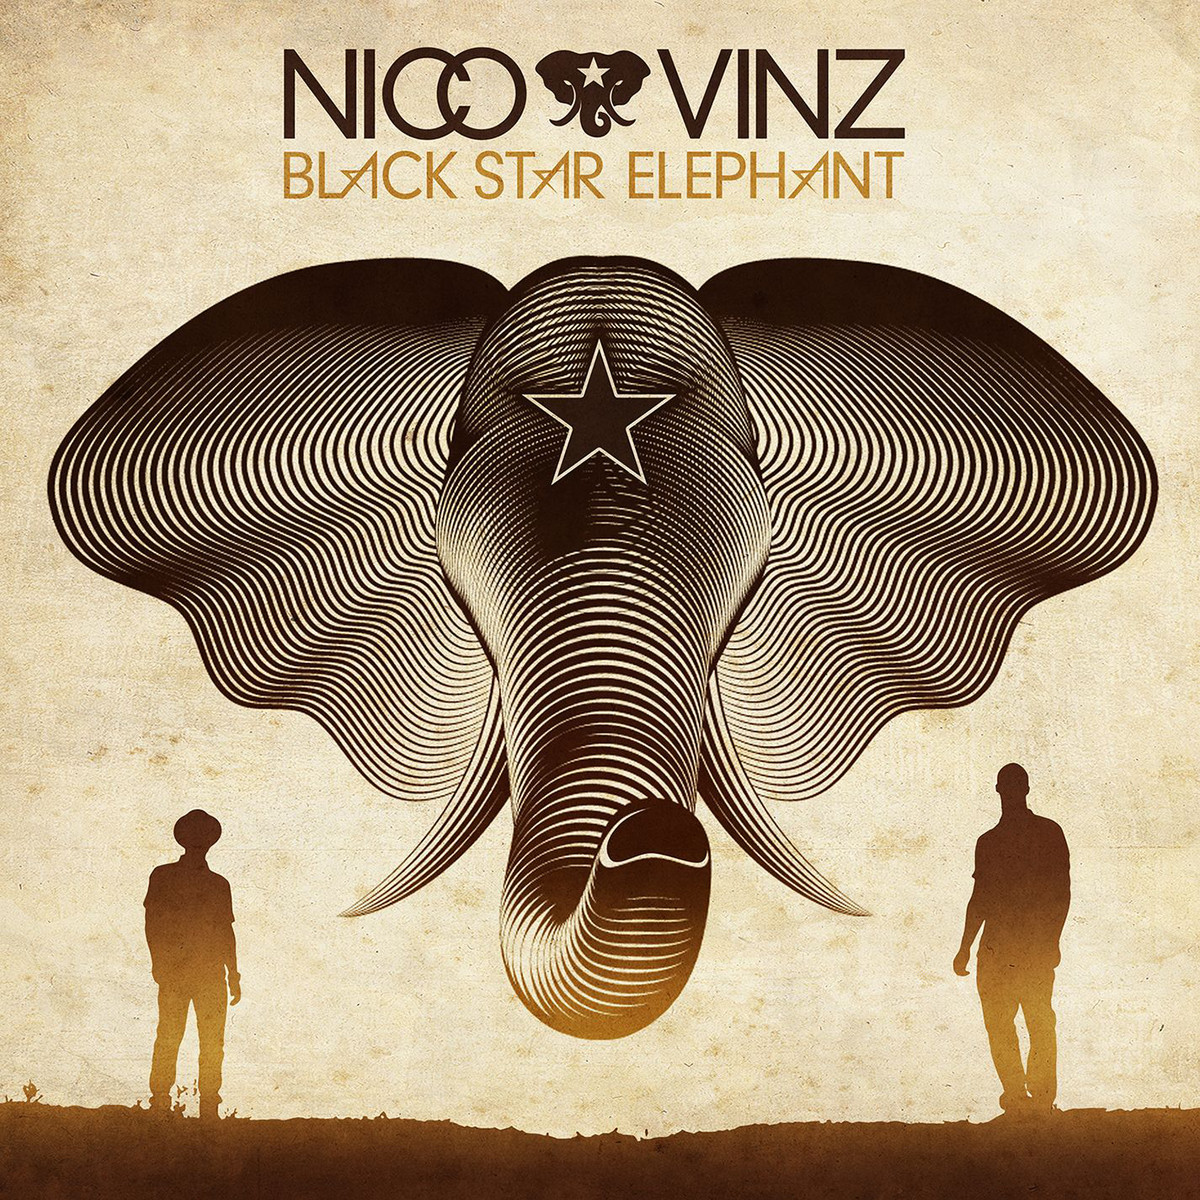 Black star elephant